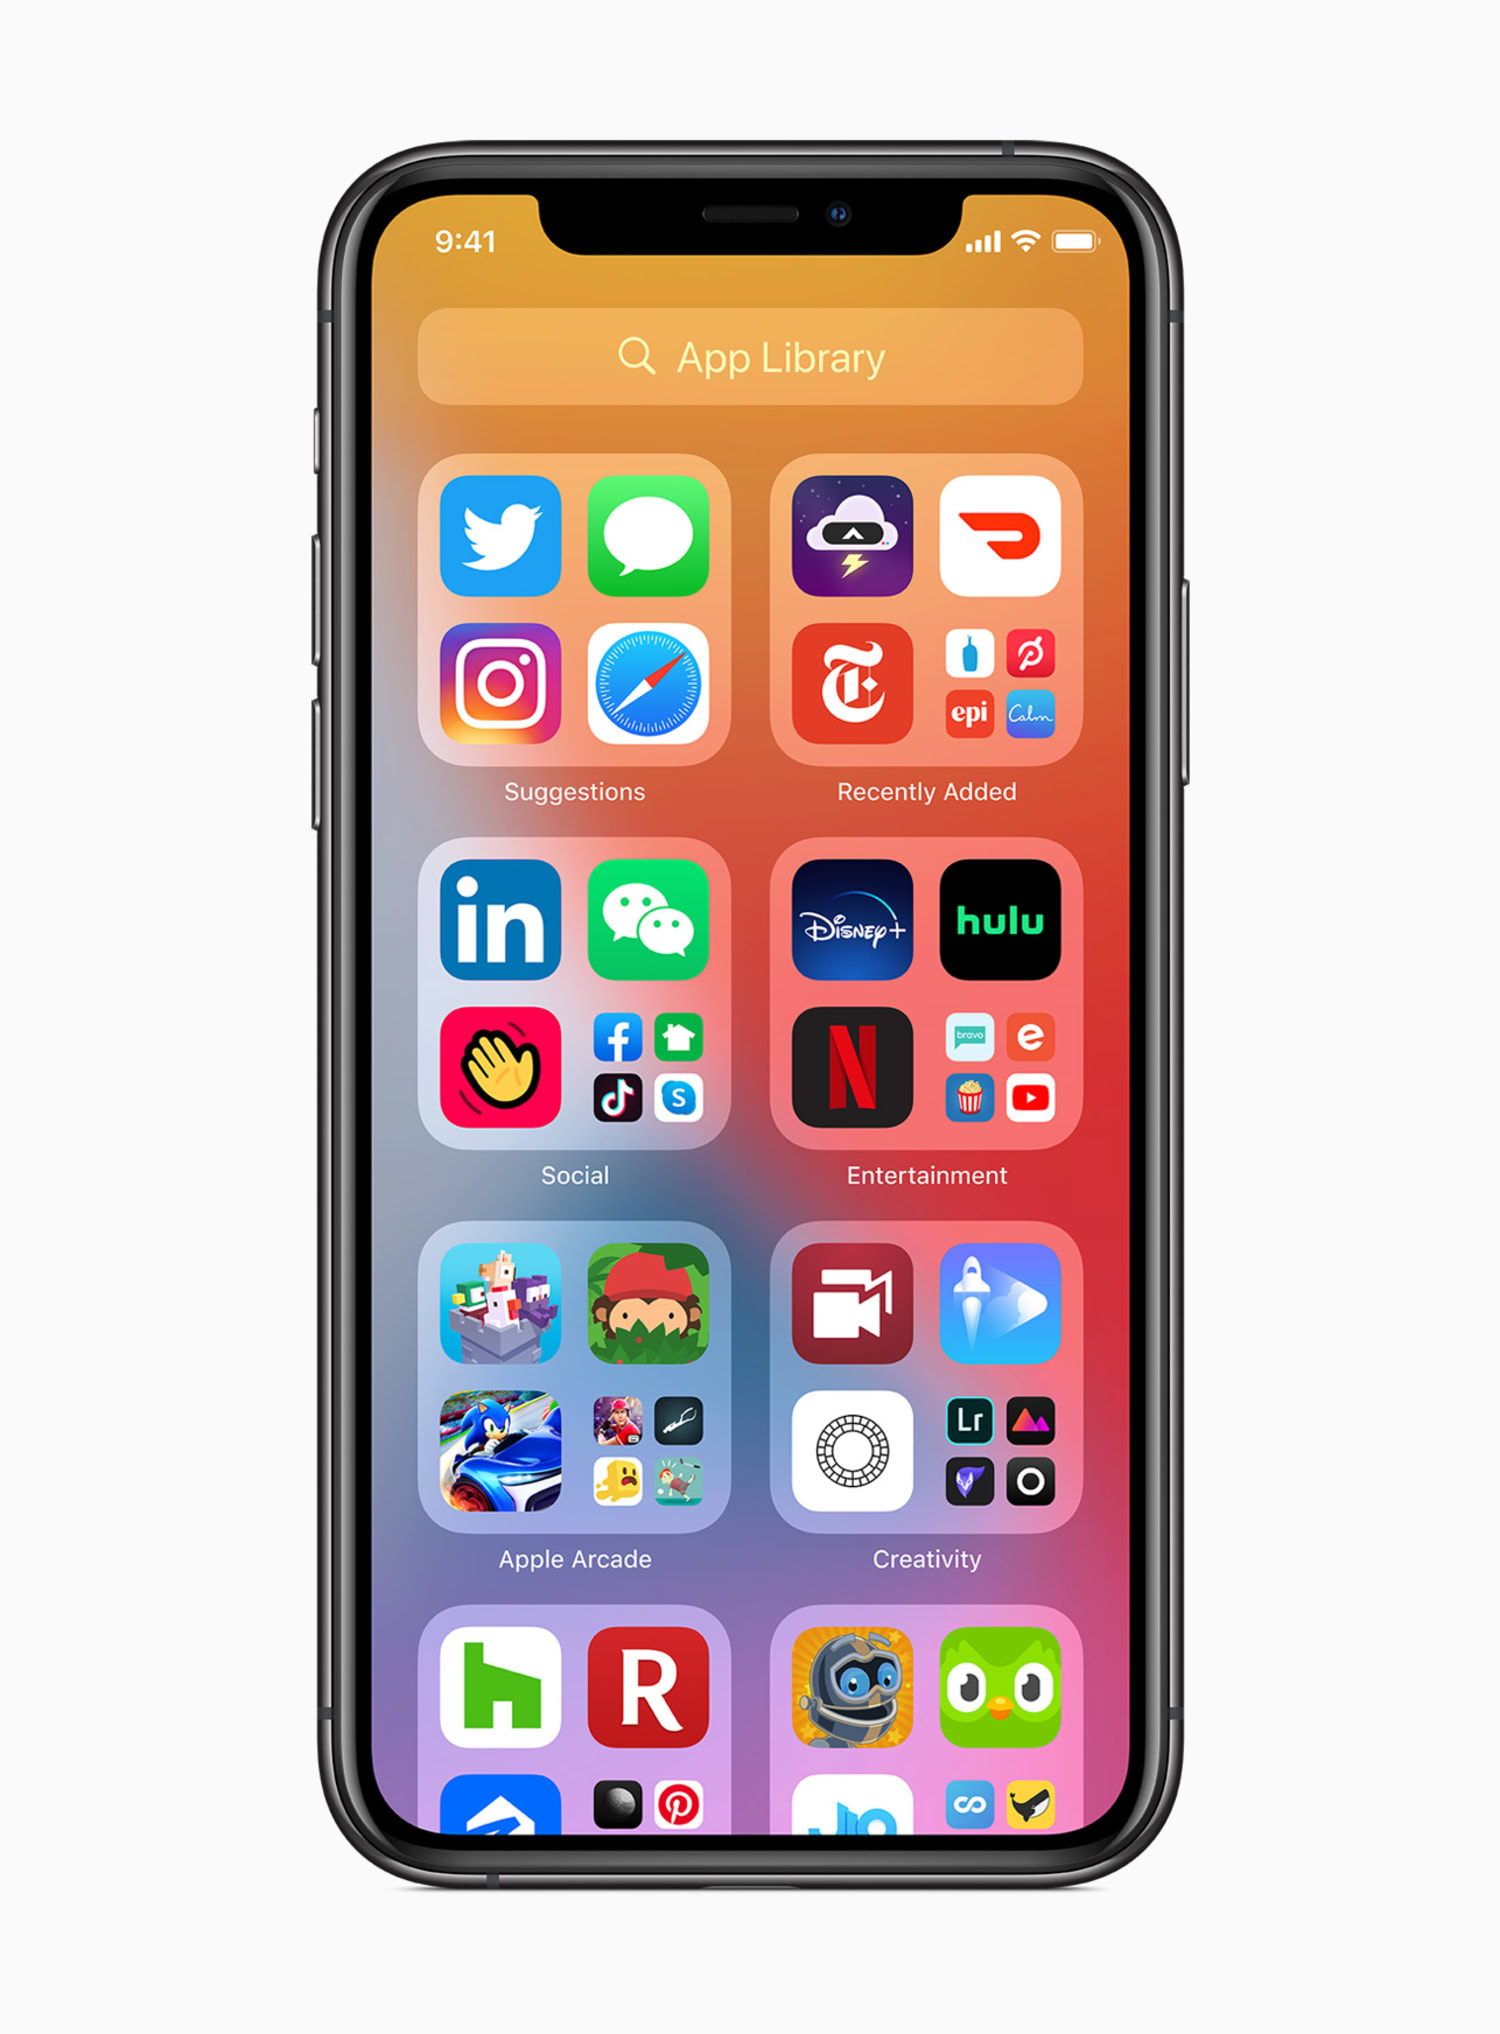 ios-14-updates-what-you-need-to-know-20200709-1